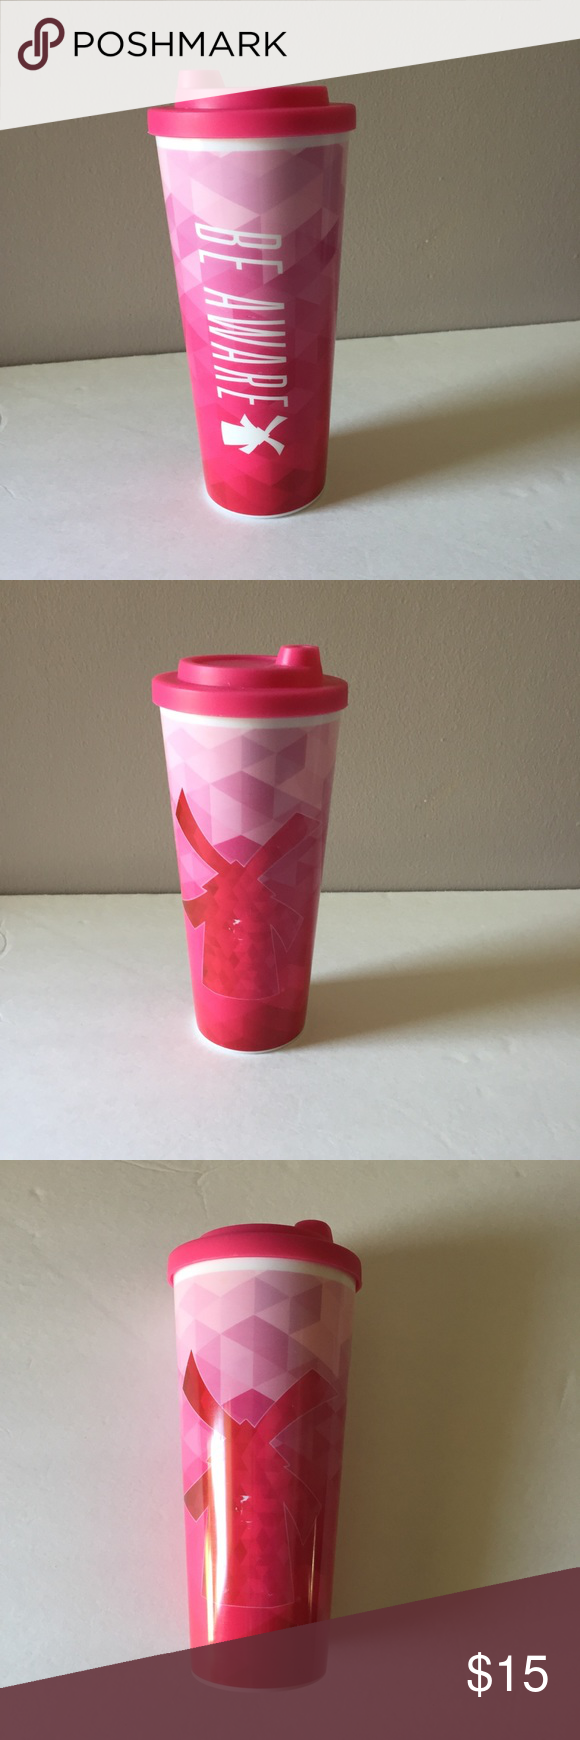 Coffee mug from Dutch Bros Dutch Bros travel mug Be Aware breast cancer awareness BPA FREE  there is a scratch on the mug it was purchased like this. It happened during shipping. Negotiable Very clean no pets non-smoker's Dutch Bros Kitchen Coffee & Tea Accessories #dutchbros